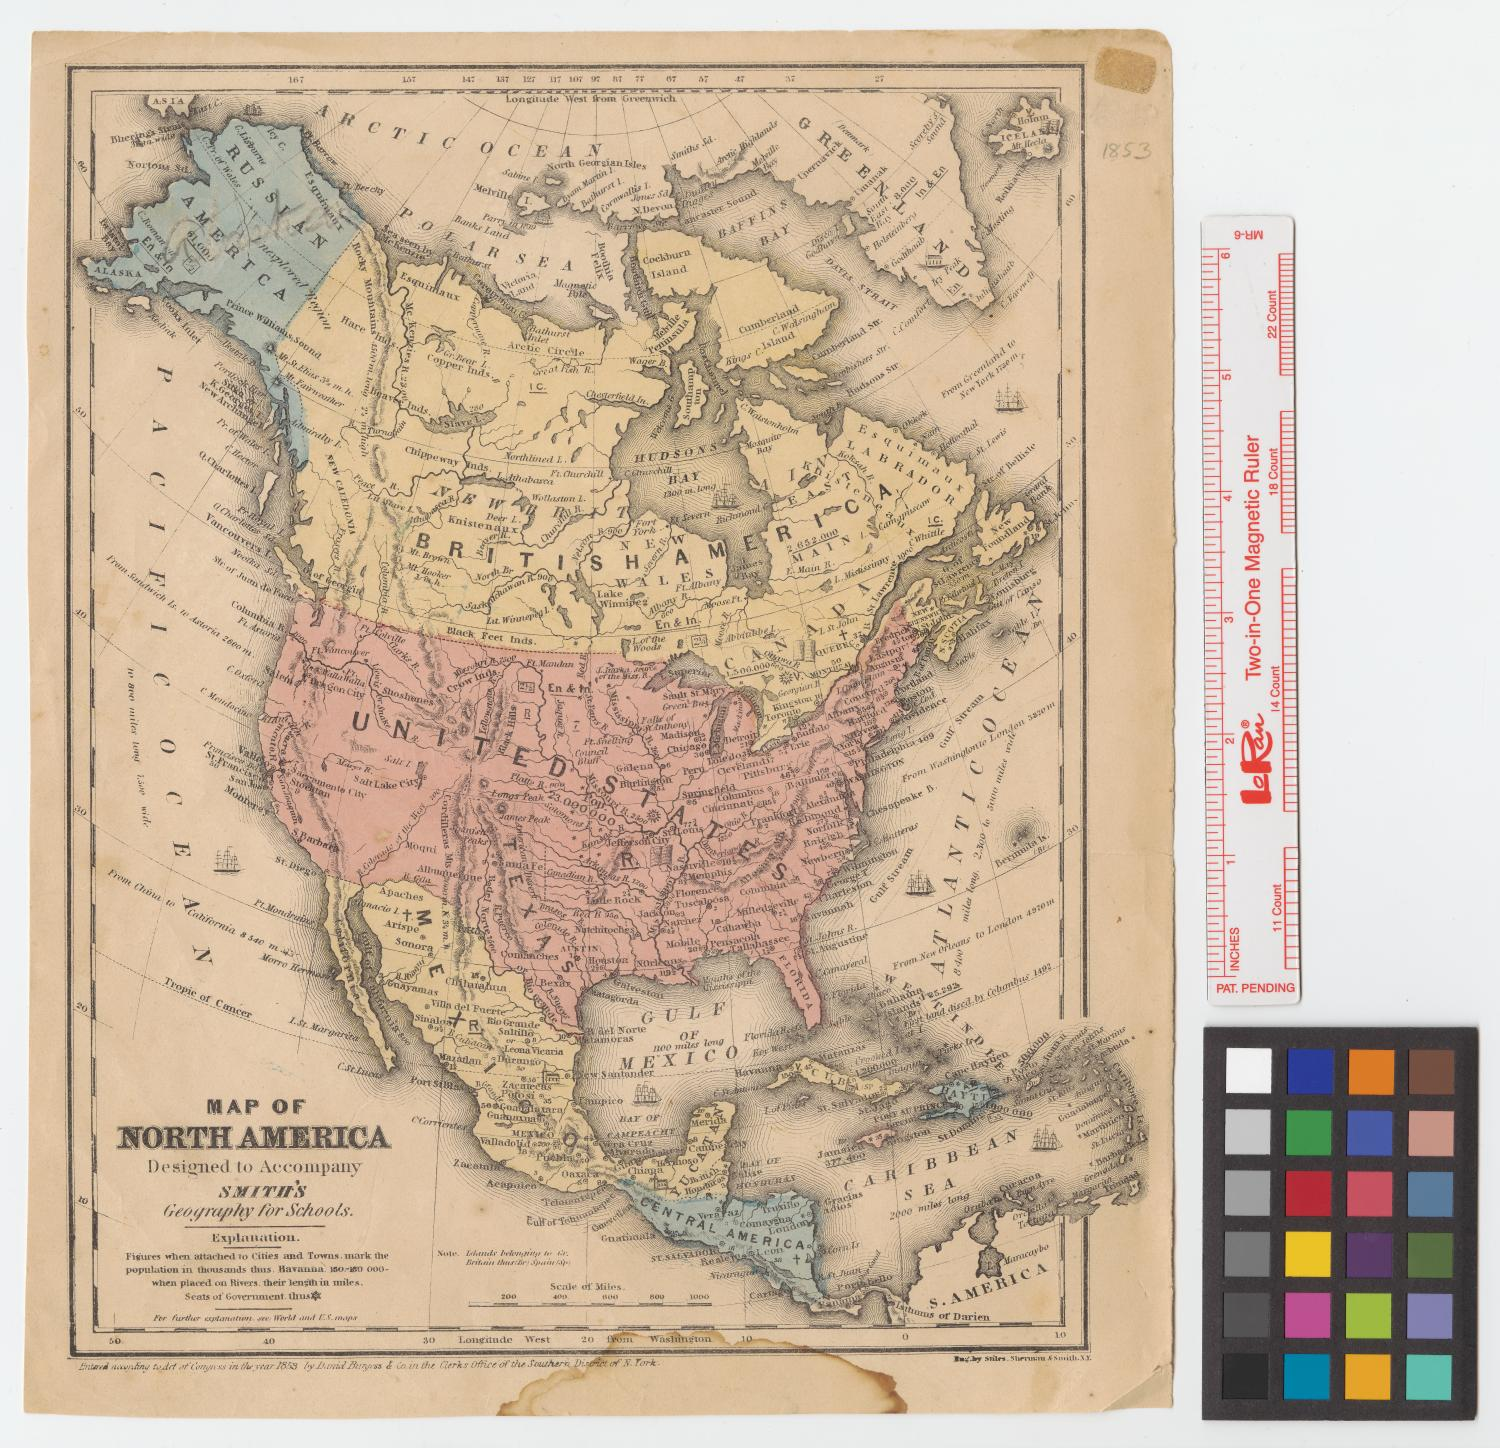 Map of North America : designed to accompany Smith's Geography for schools.                                                                                                      [Sequence #]: 1 of 2